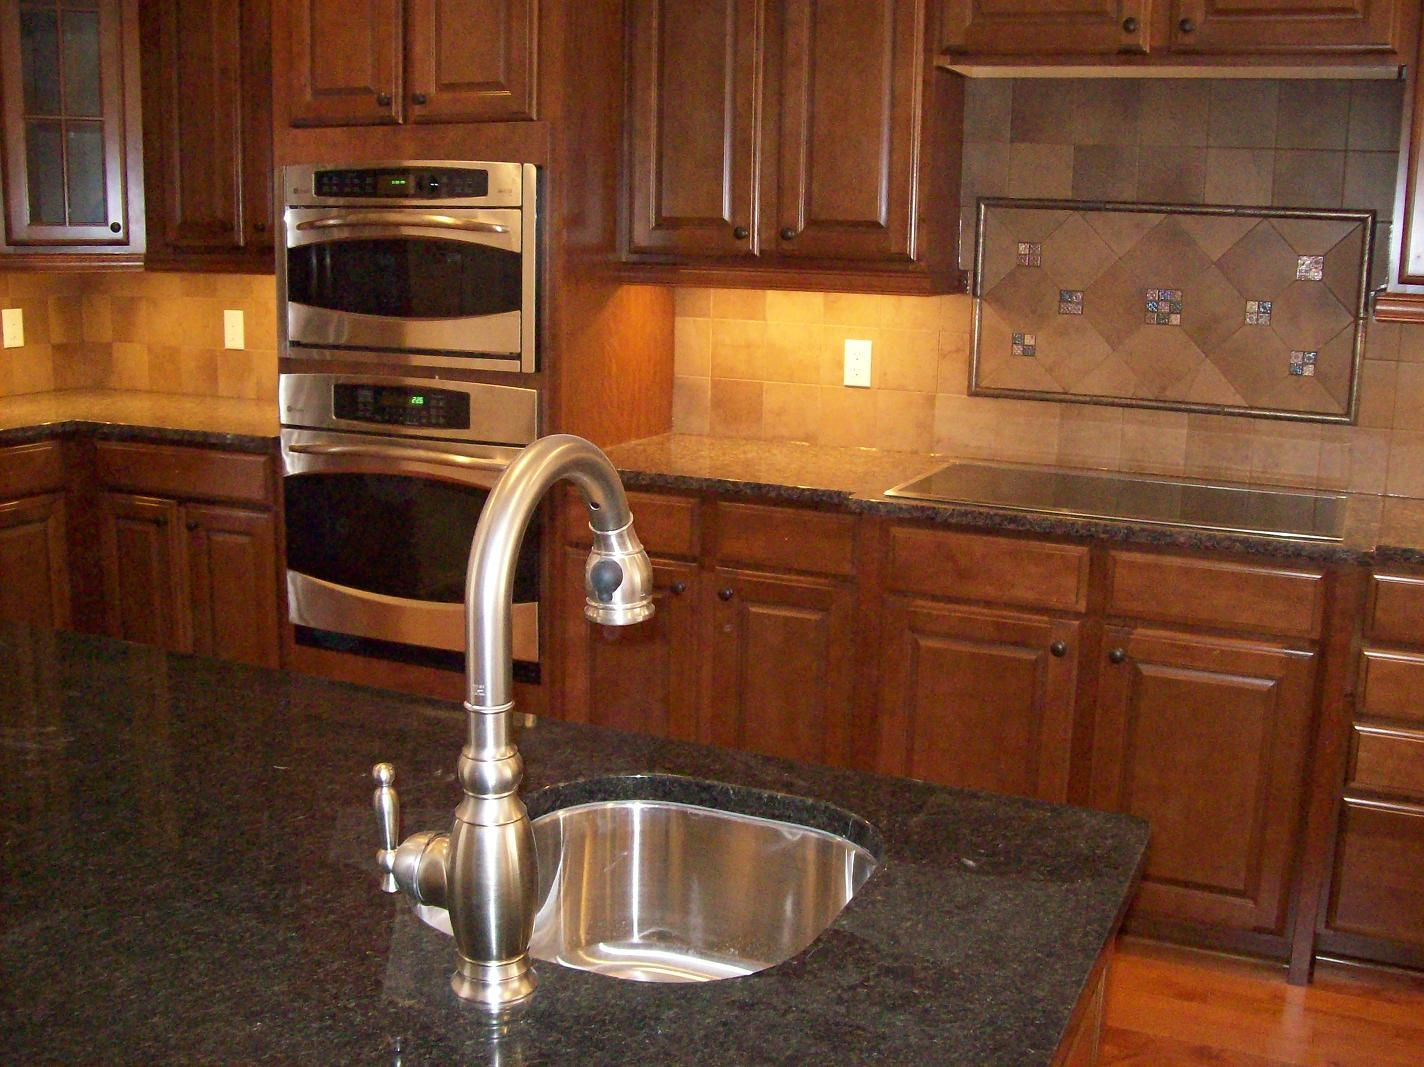 Kitchen Design And Backsplash 10 Simple Backsplash Ideas For Your Kitchen Backsplash